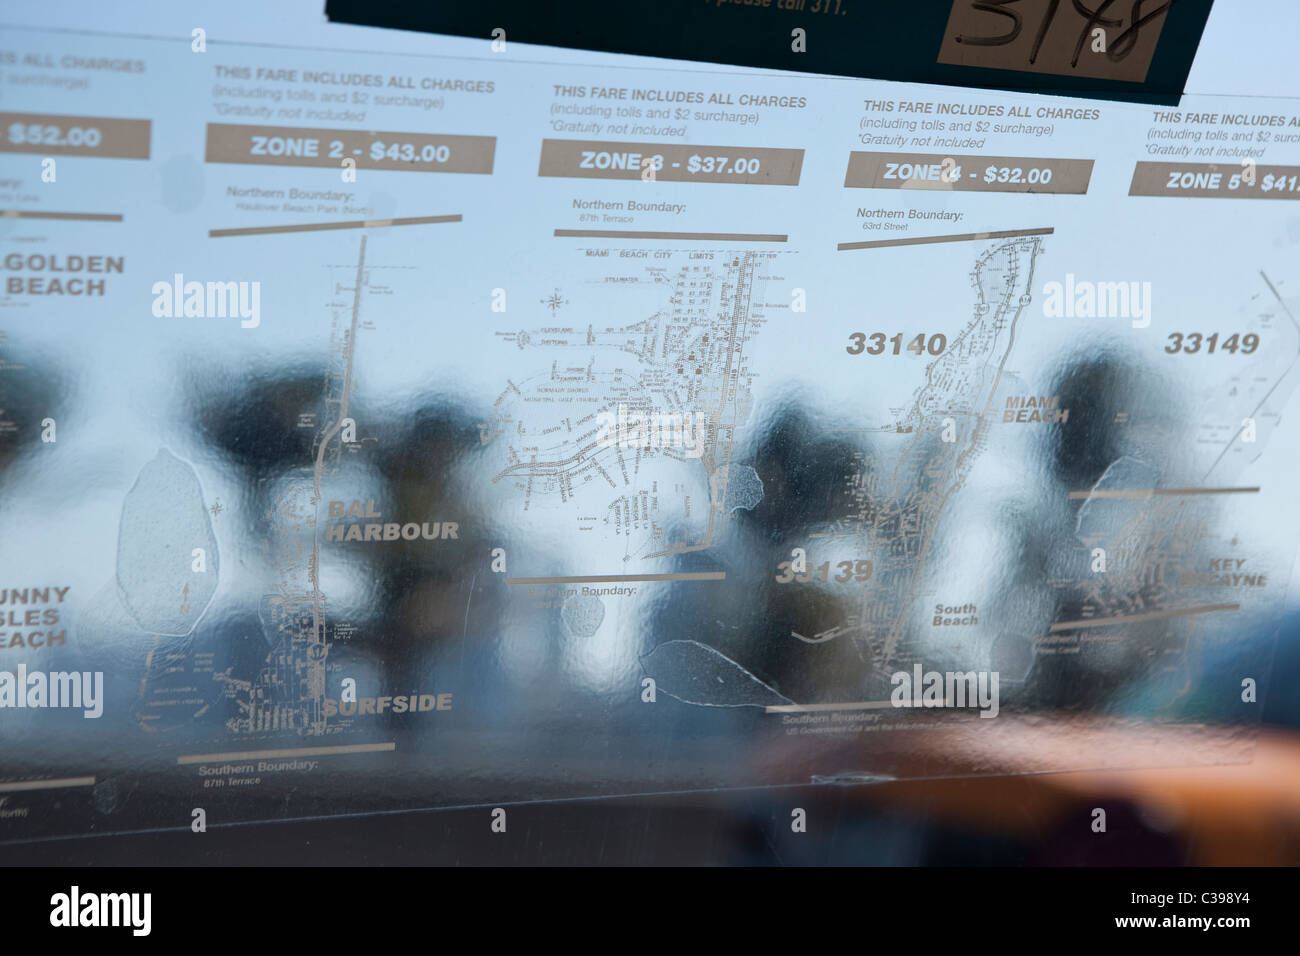 Cab Fares Stock Photos & Cab Fares Stock Images - Alamy